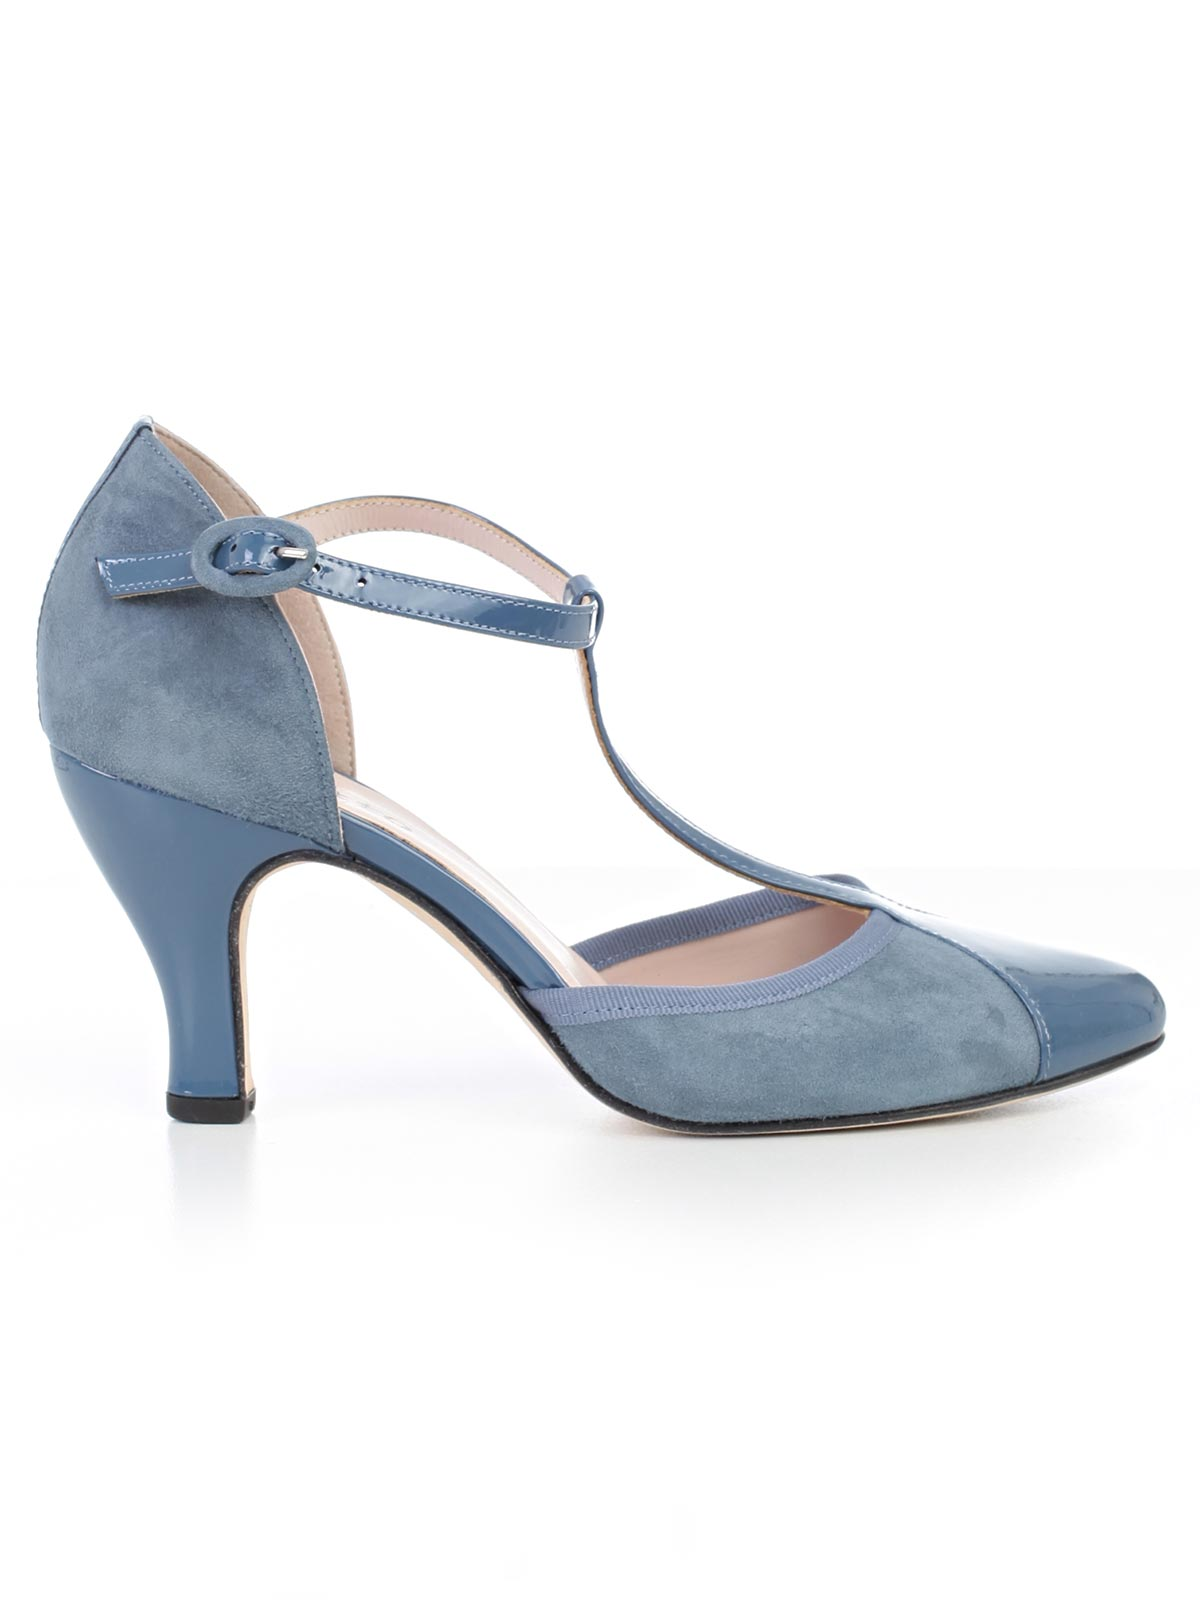 Picture of REPETTO FOOTWEAR BAYA SUEDE + VERNICE